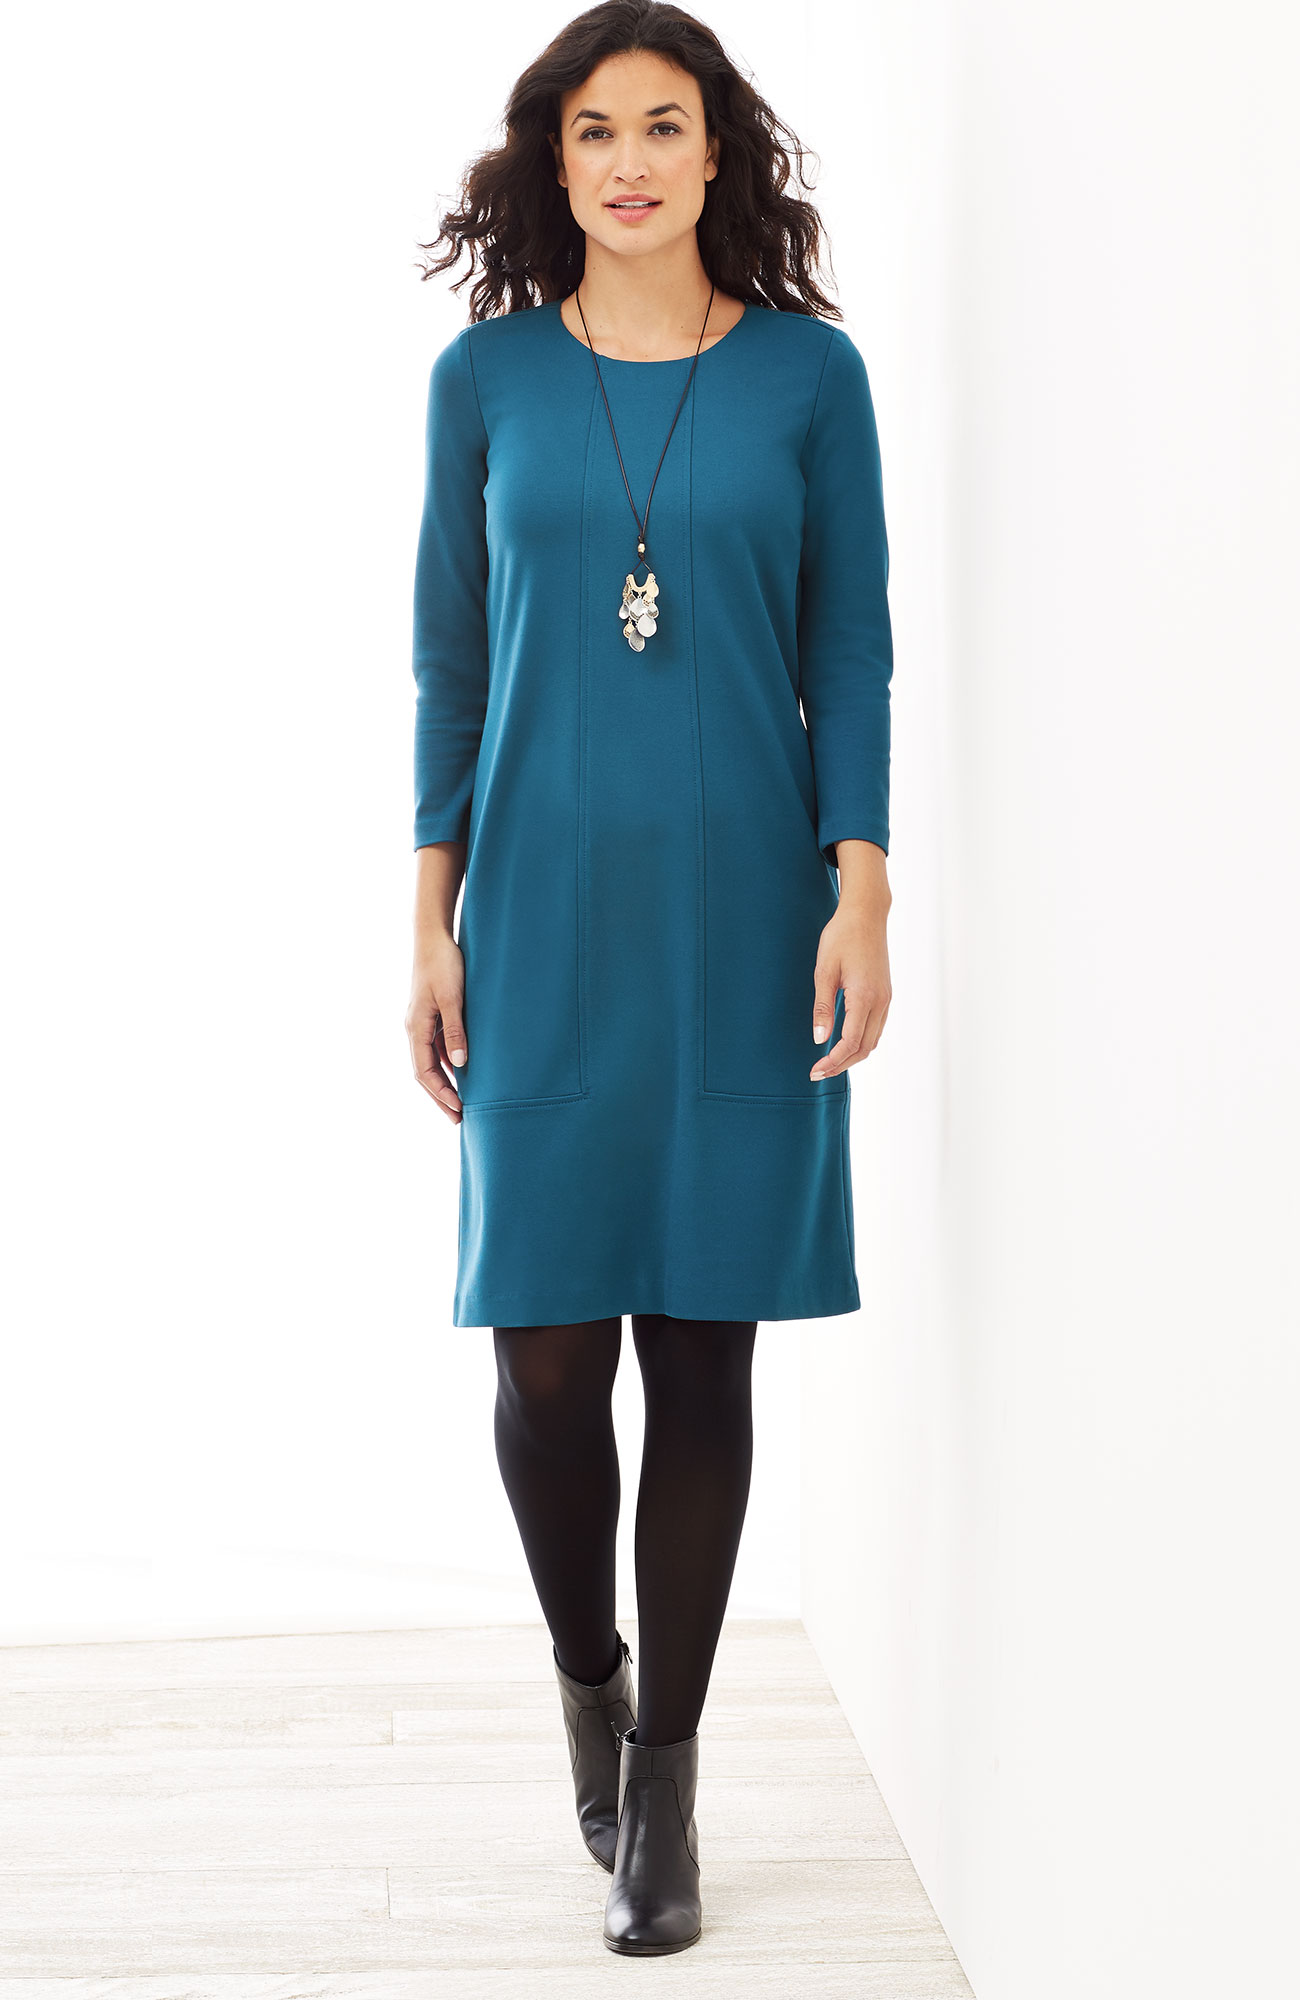 ponte knit seamed dress